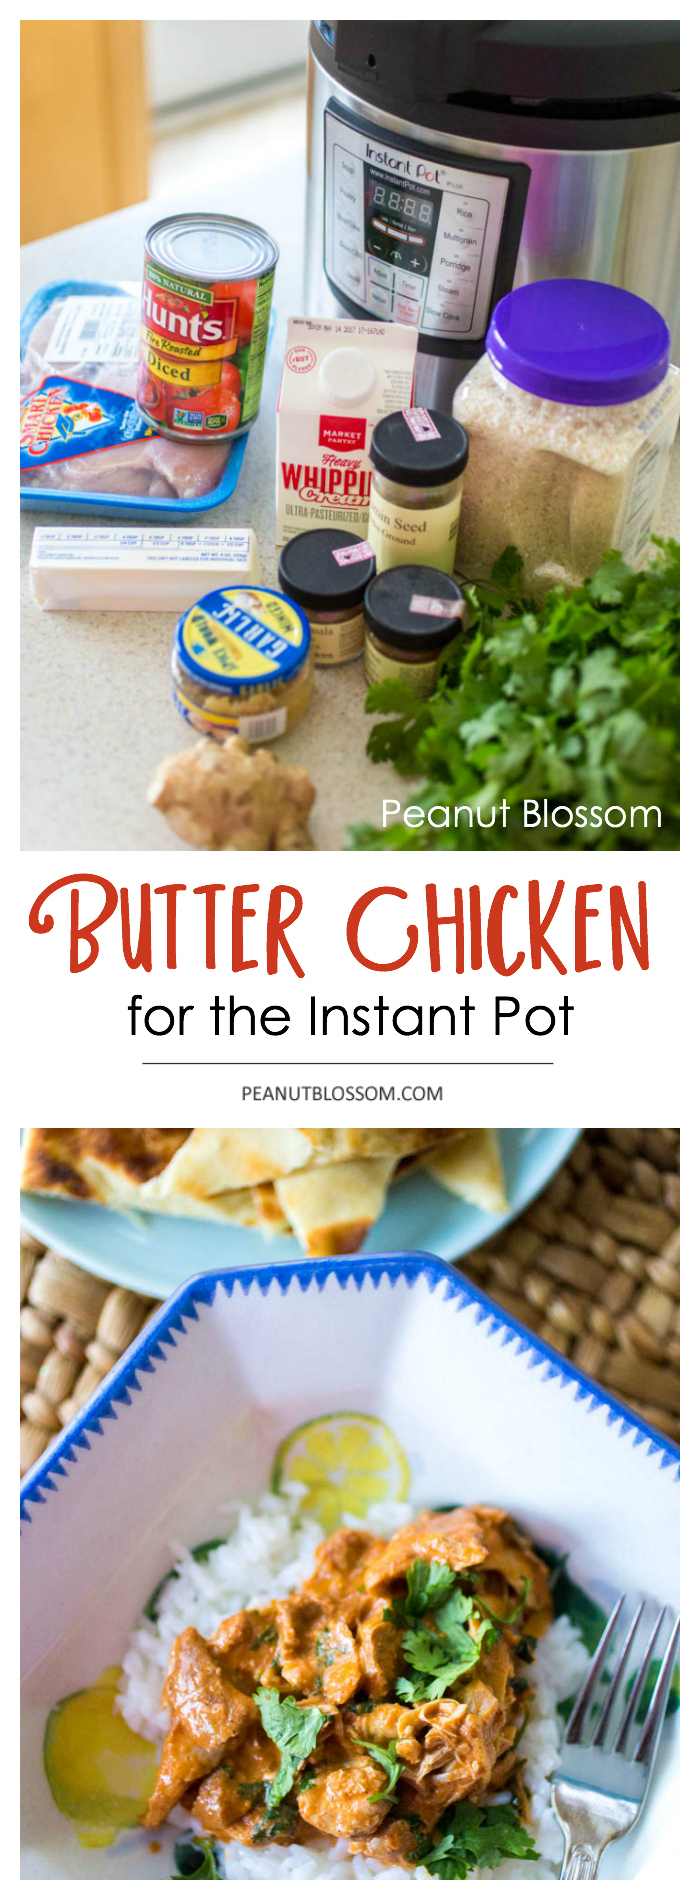 Instant Pot Butter Chicken recipe: Great introduction to Indian food for kids but easy enough for a weeknight. All the fresh ingredients are laid out on the counter for easy meal prep.